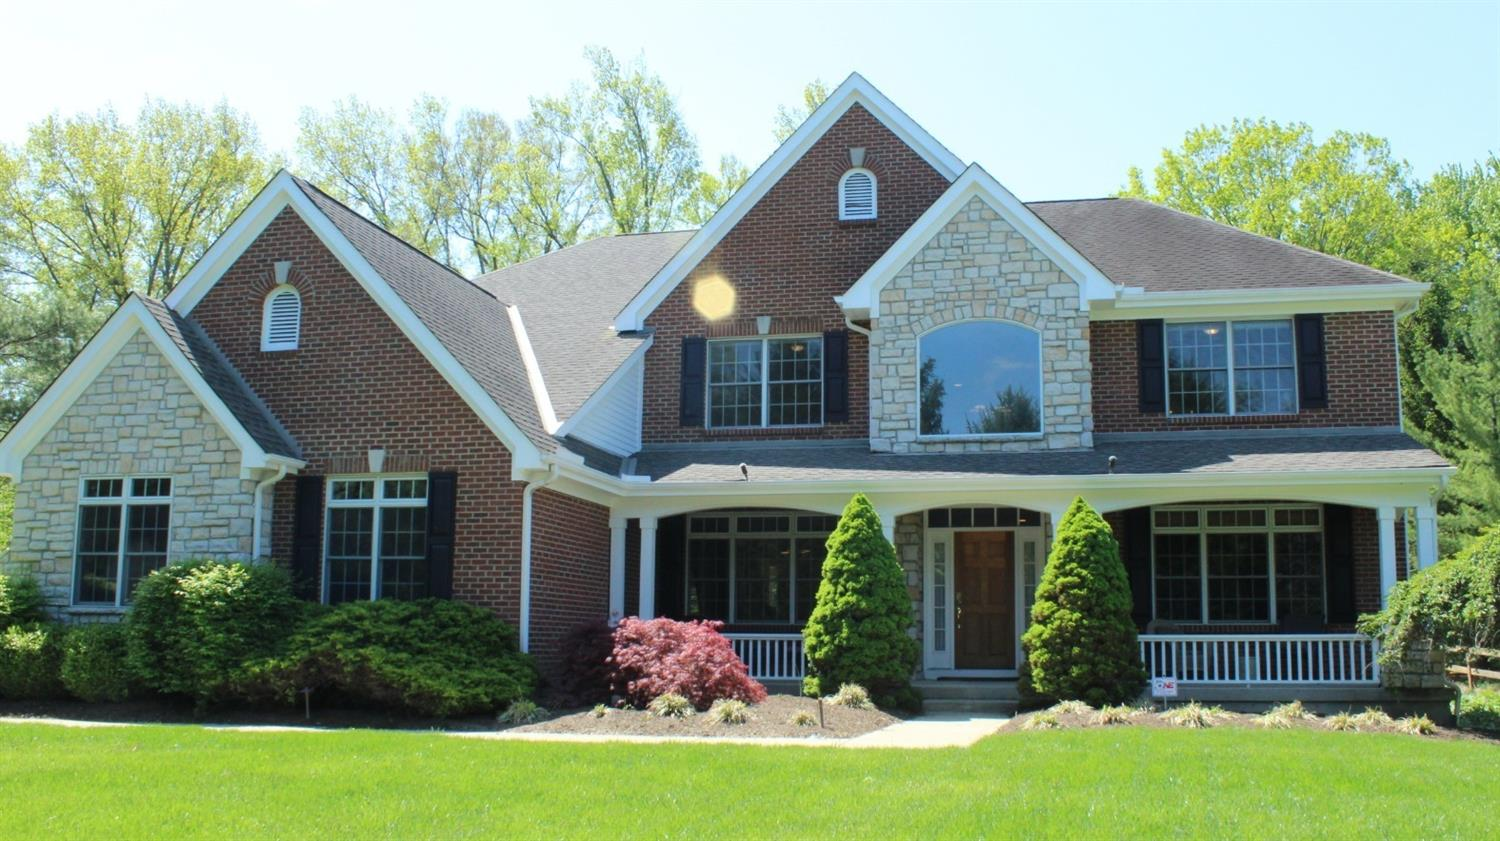 Property for sale at 7867 Keller Road, Sycamore Twp,  Ohio 45243